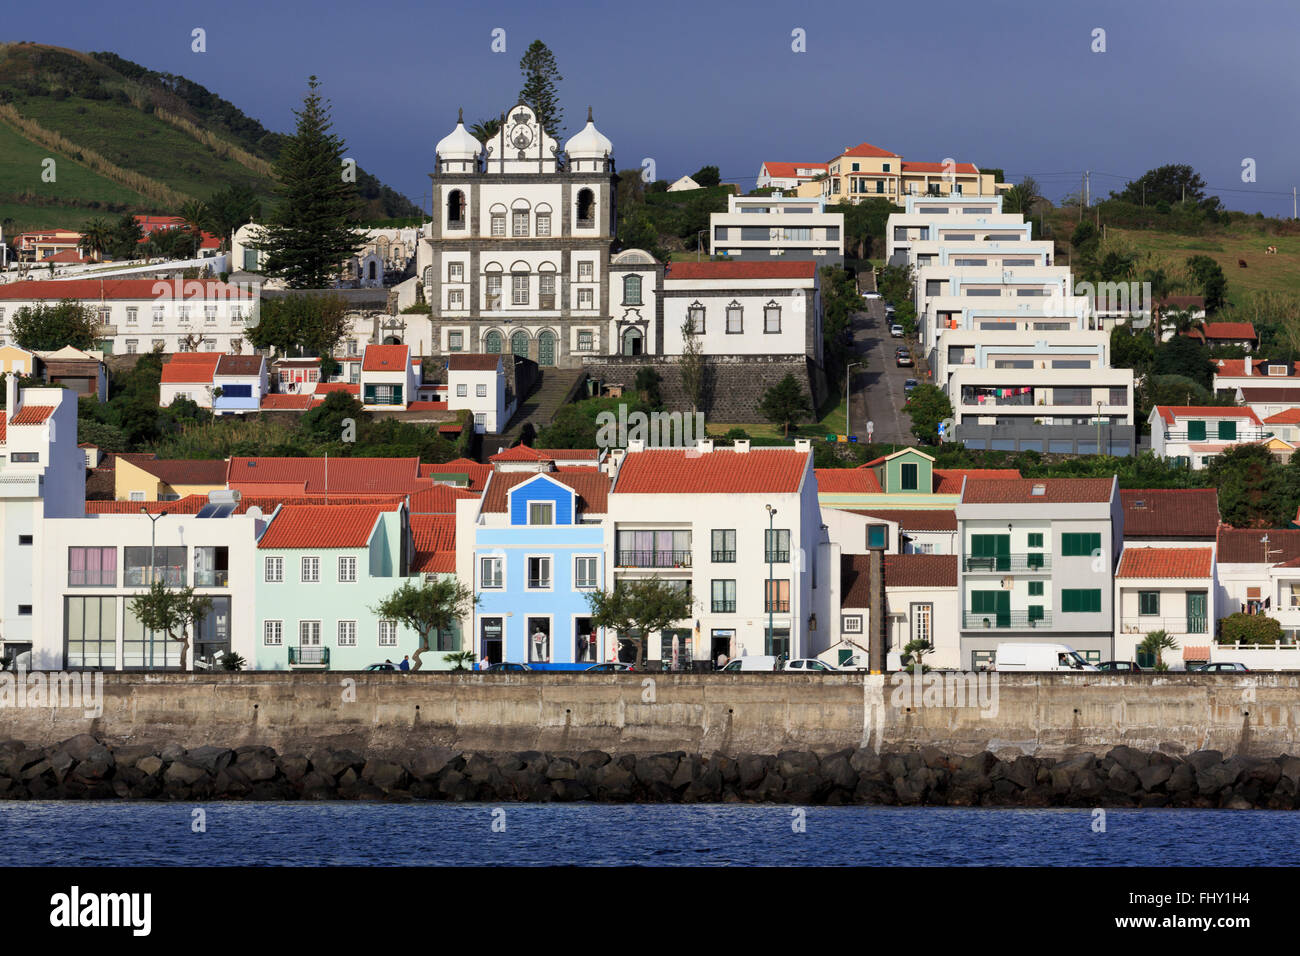 Port of Horta, Faial Island, Azores, Portugal, Europe - Stock Image